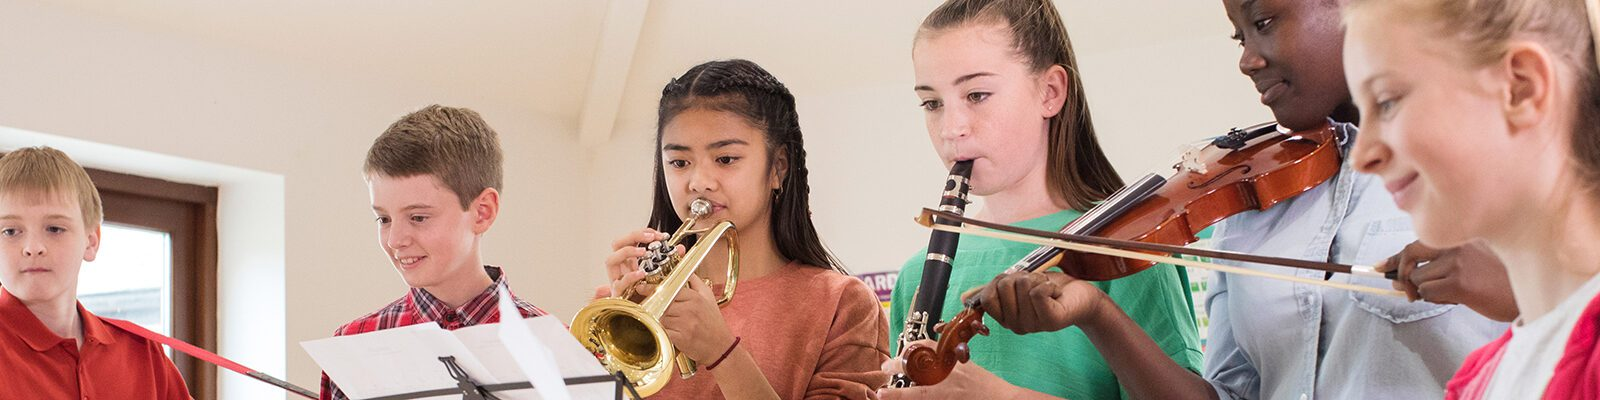 High School Students Playing In School Orchestra Together